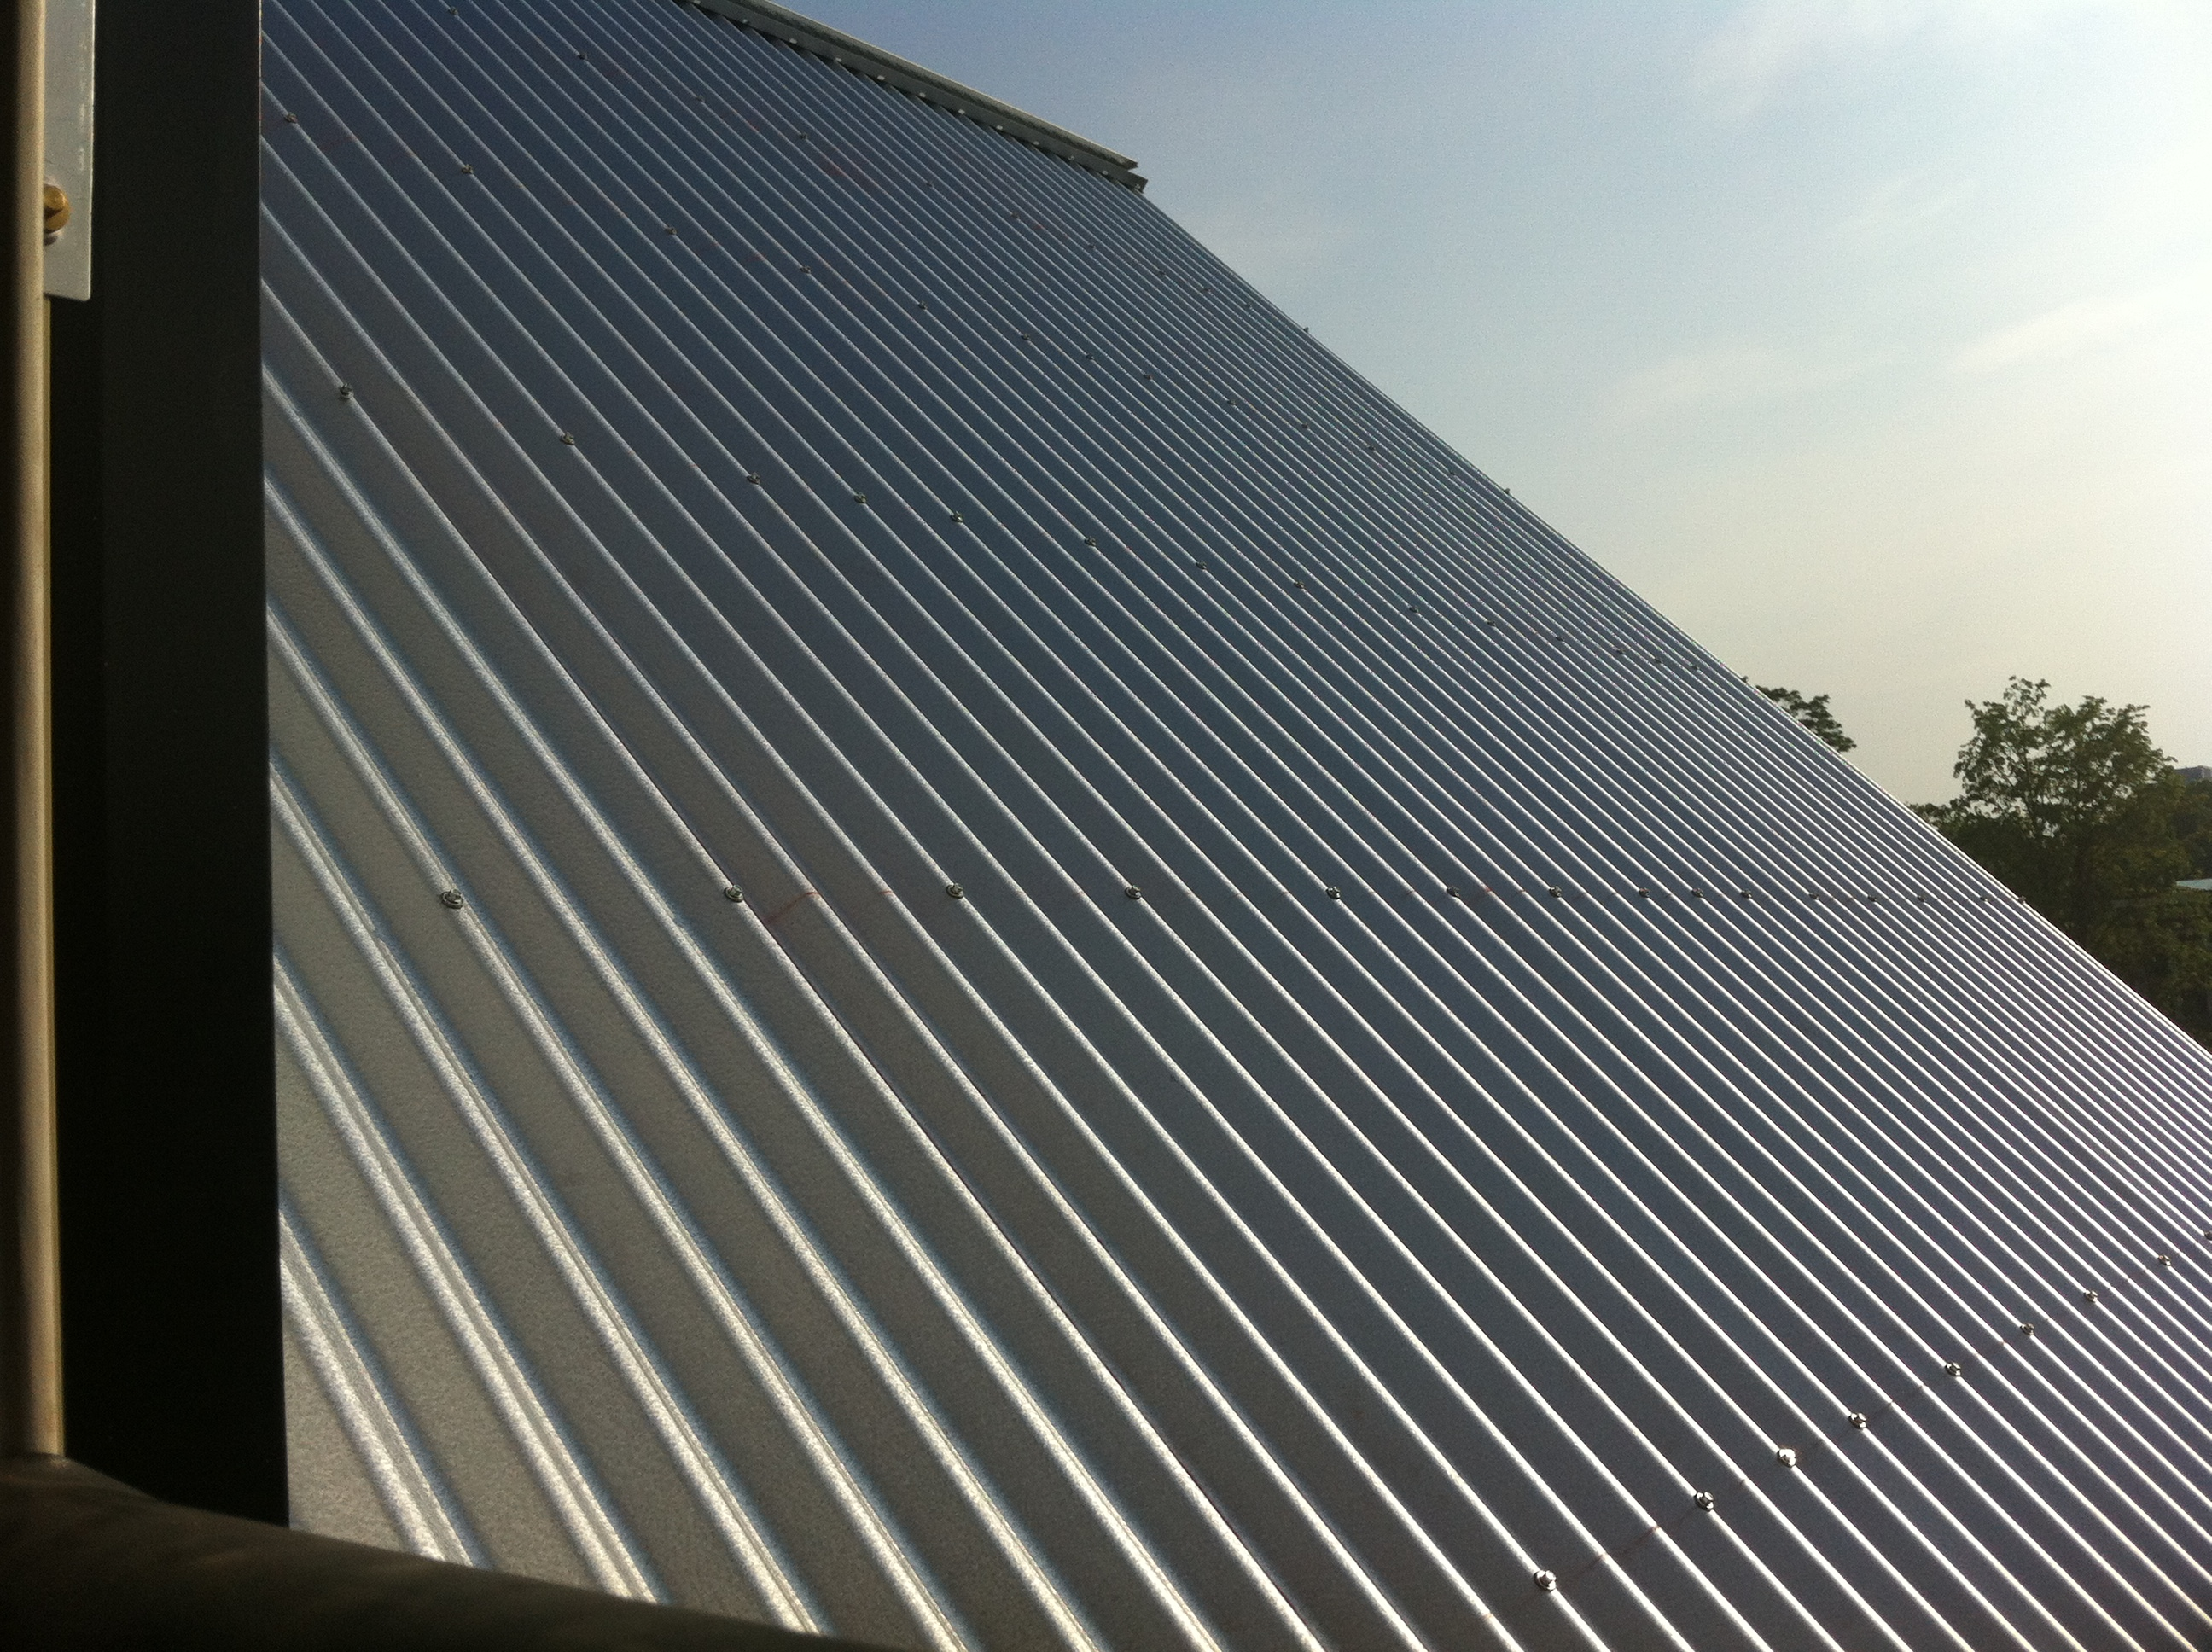 More of the metal roof